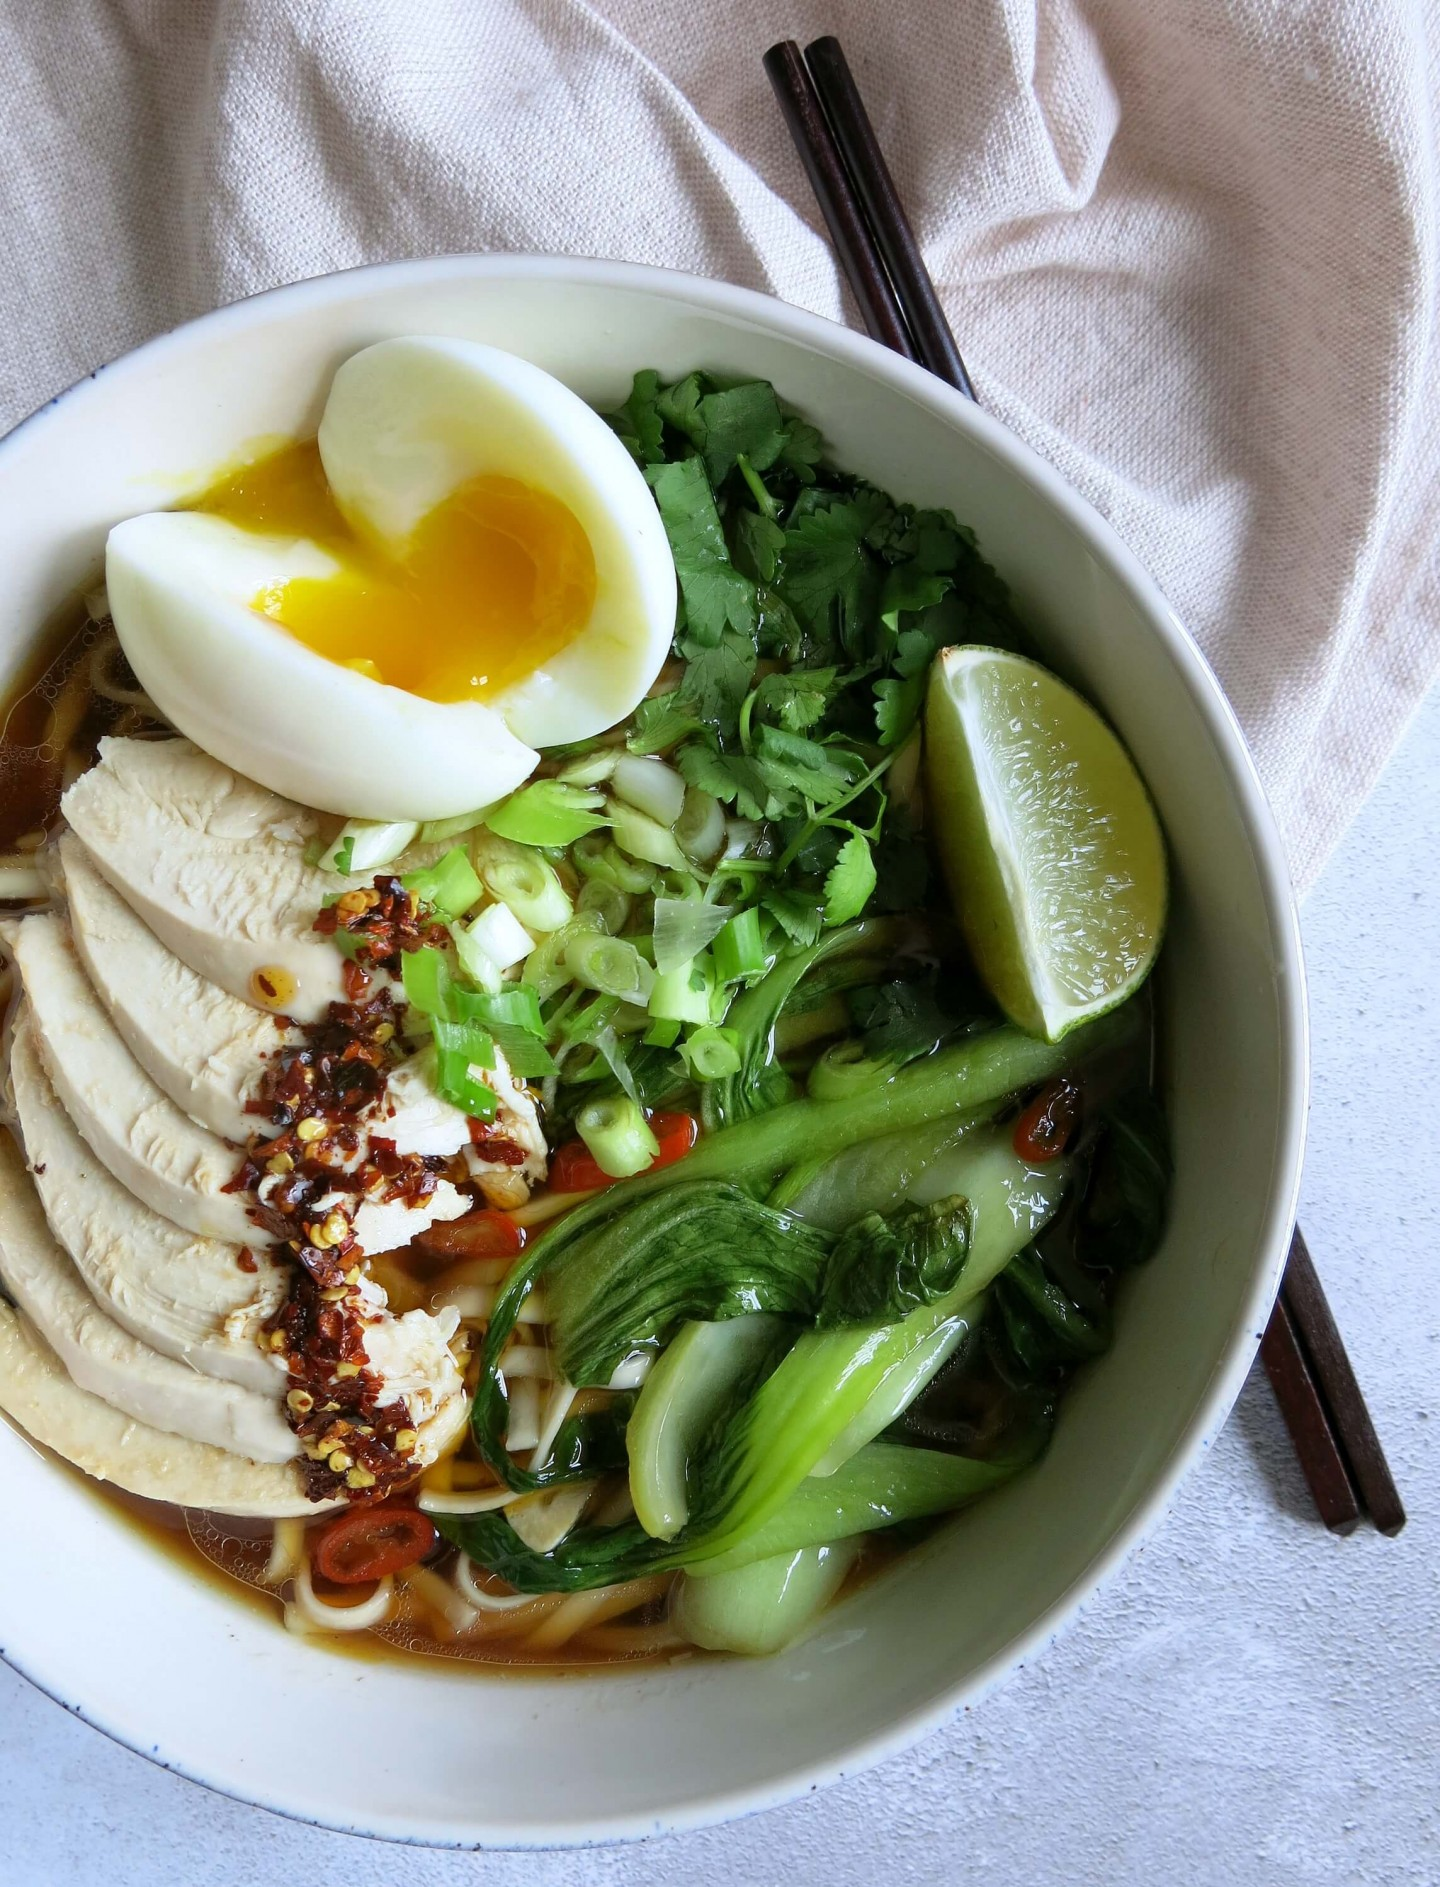 An easy to follow recipe for chilli chicken ramen. This uses a stock made from scratch! This is a healthy and wholesome recipe.